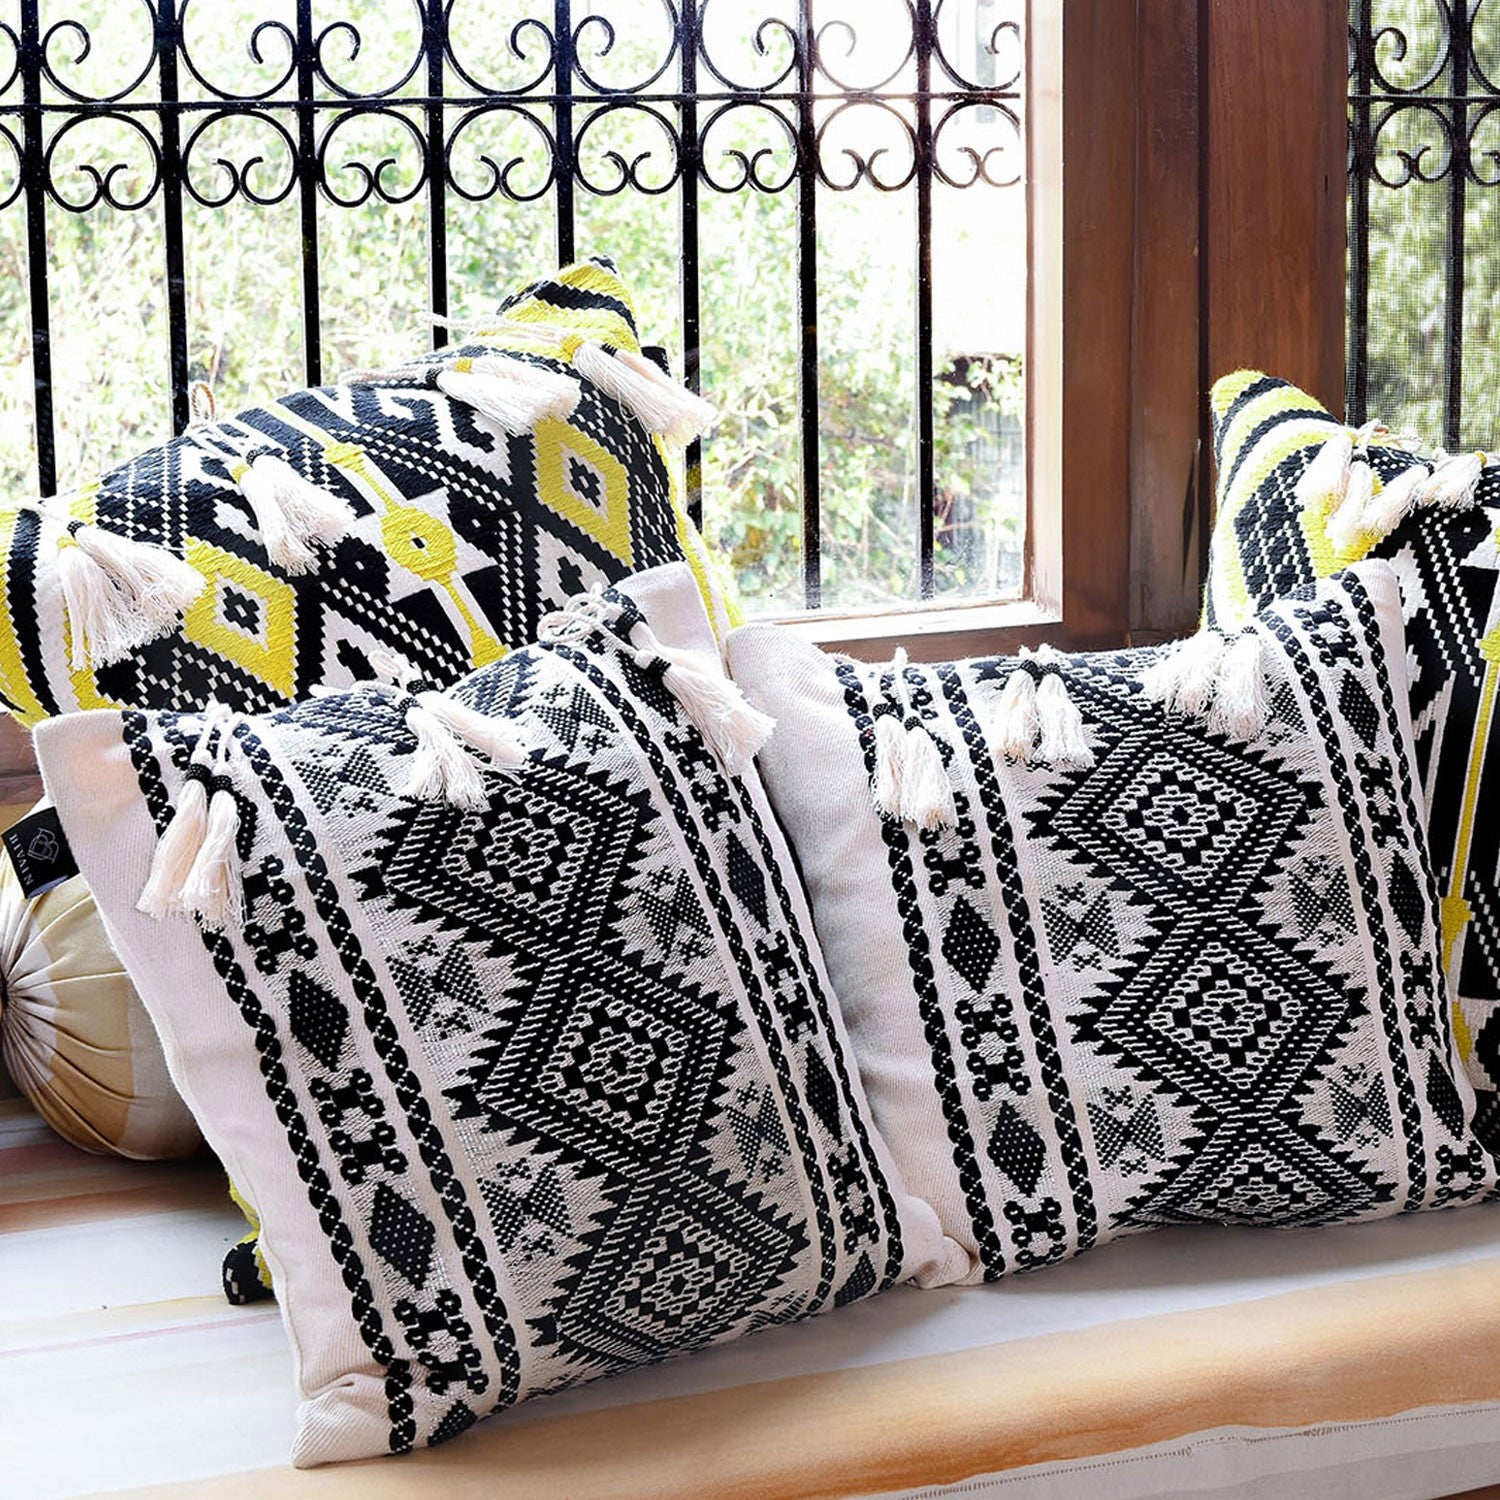 Bedouin-style black & white tasselled cotton cushion - Bivain - 3